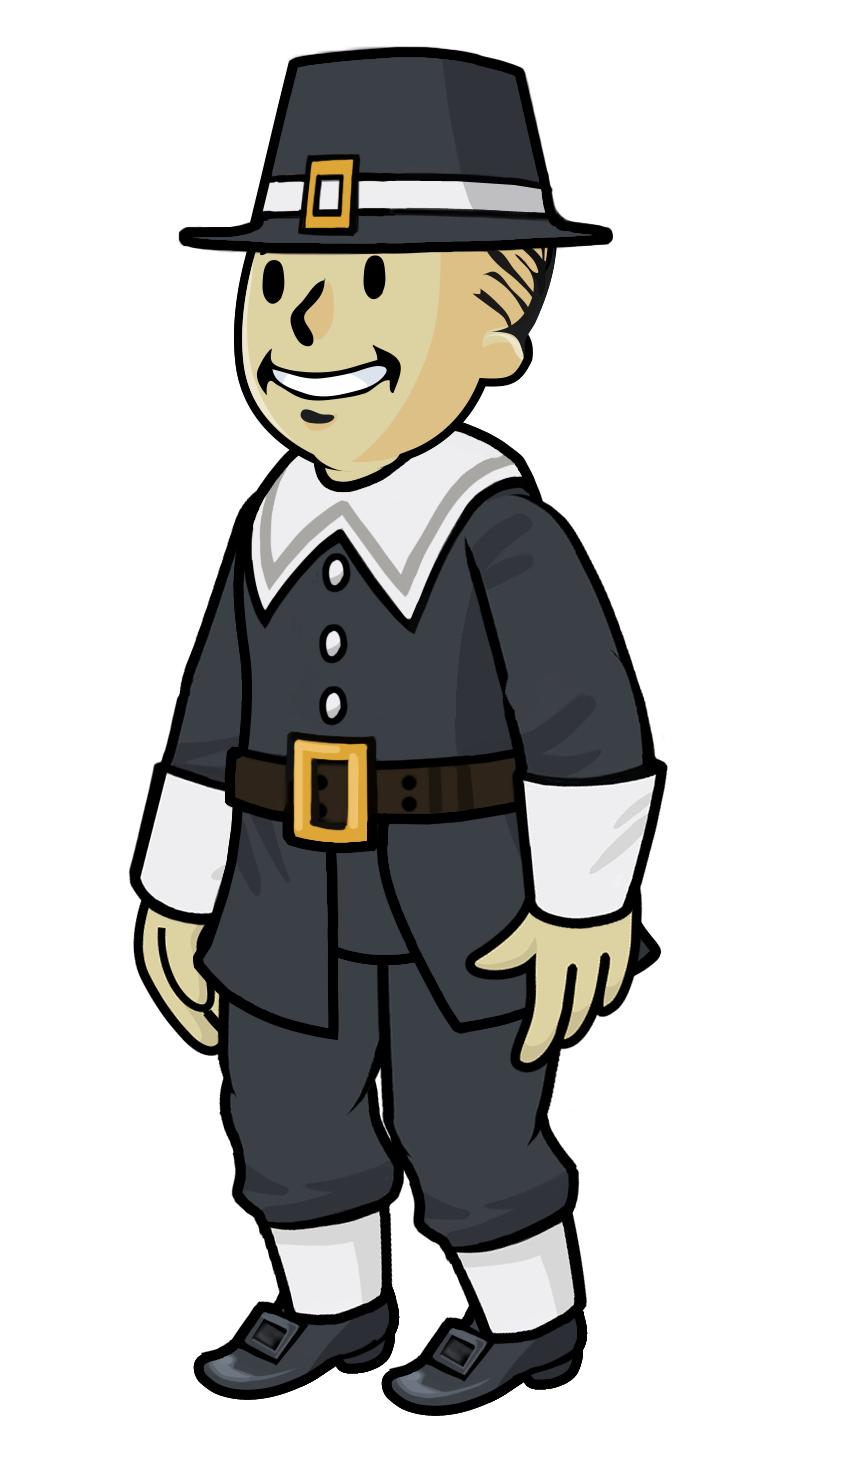 Librarian clipart outfit. Pilgrim fallout wiki fandom